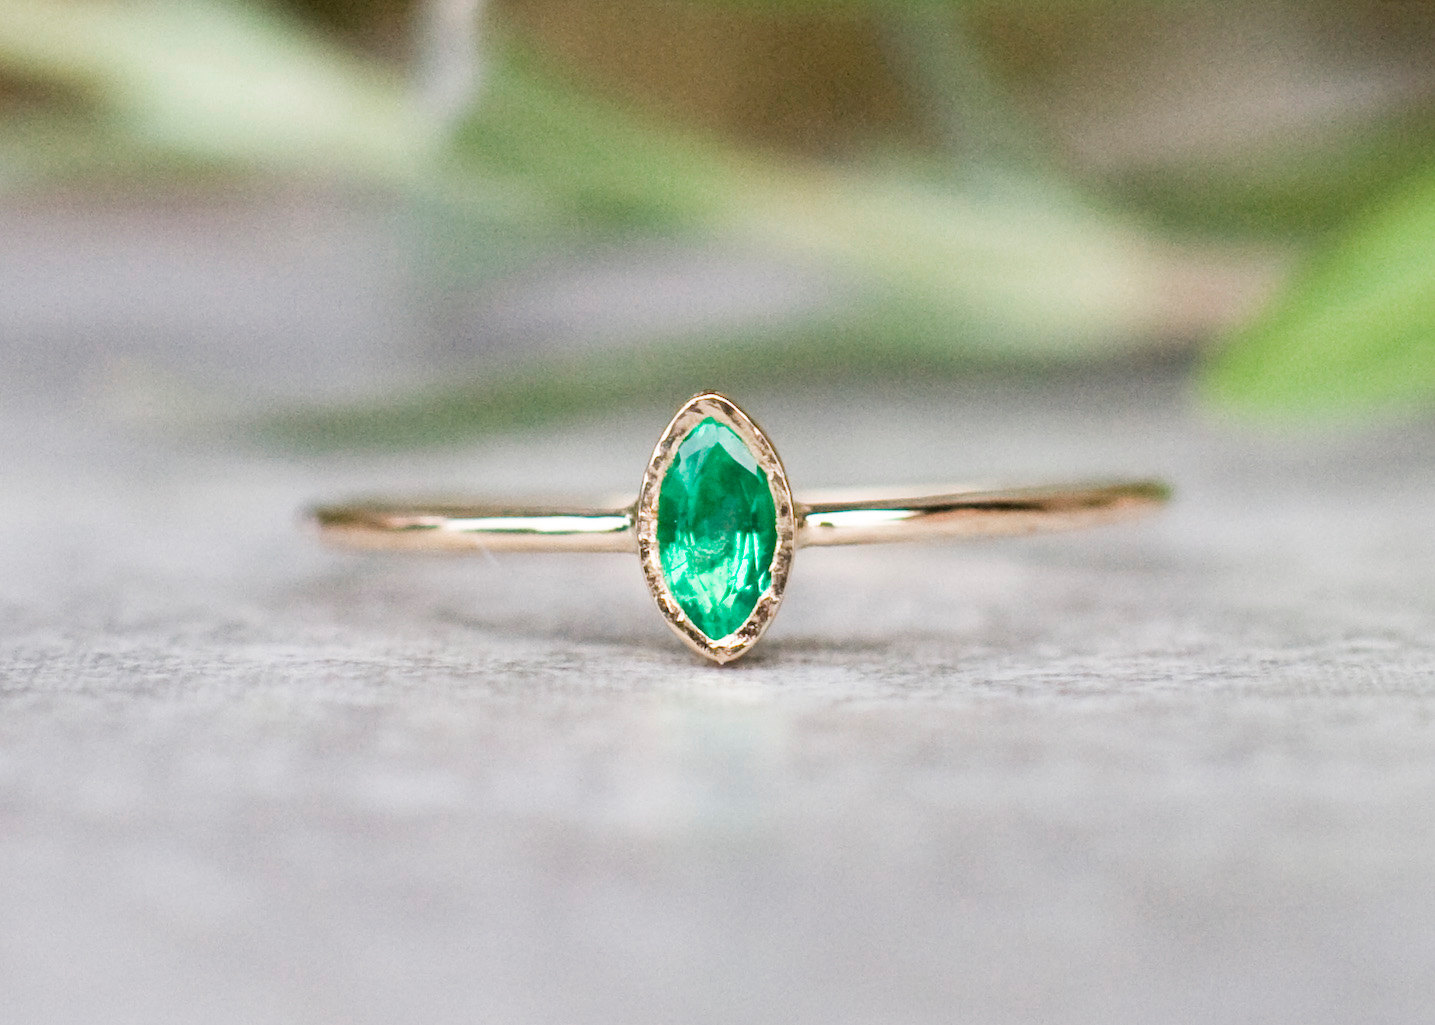 rings emerald promise box celtic knot round cassidy diamond engagement rosados jewelers gold set white gemstone love jewellery wedding